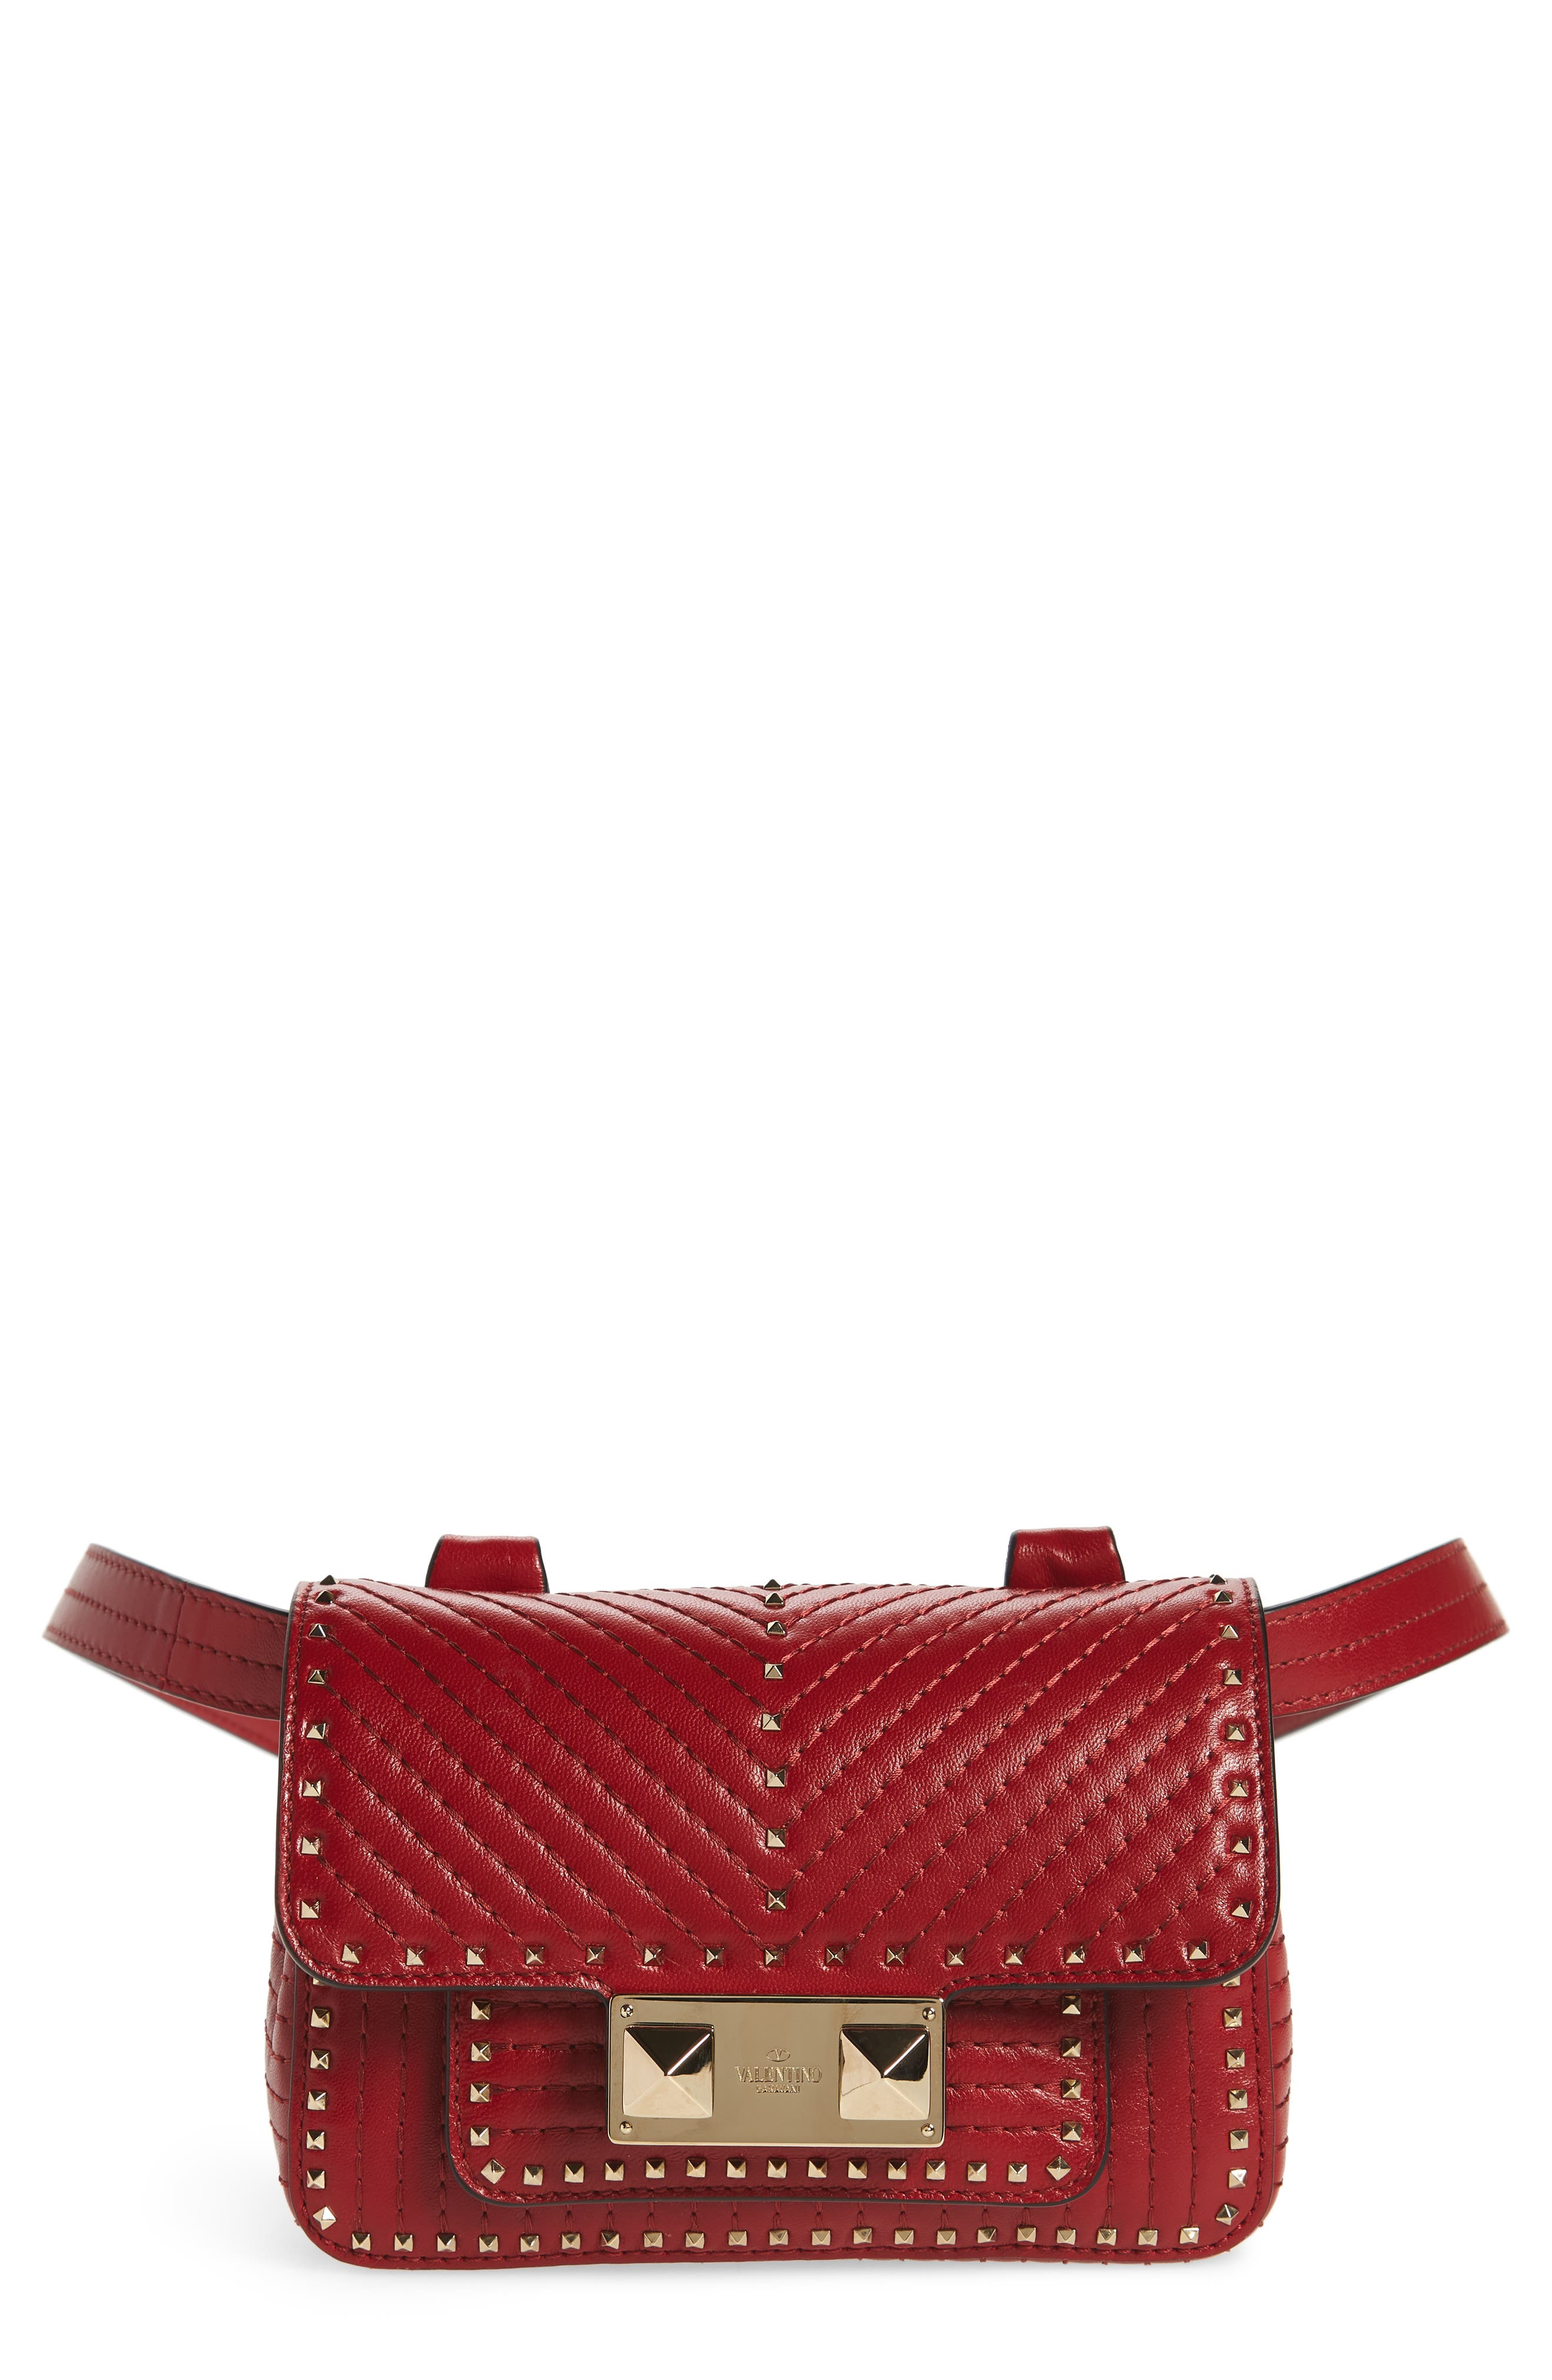 Mini Ziggystud Leather Convertible Crossbody/Belt Bag,                         Main,                         color, Rosso